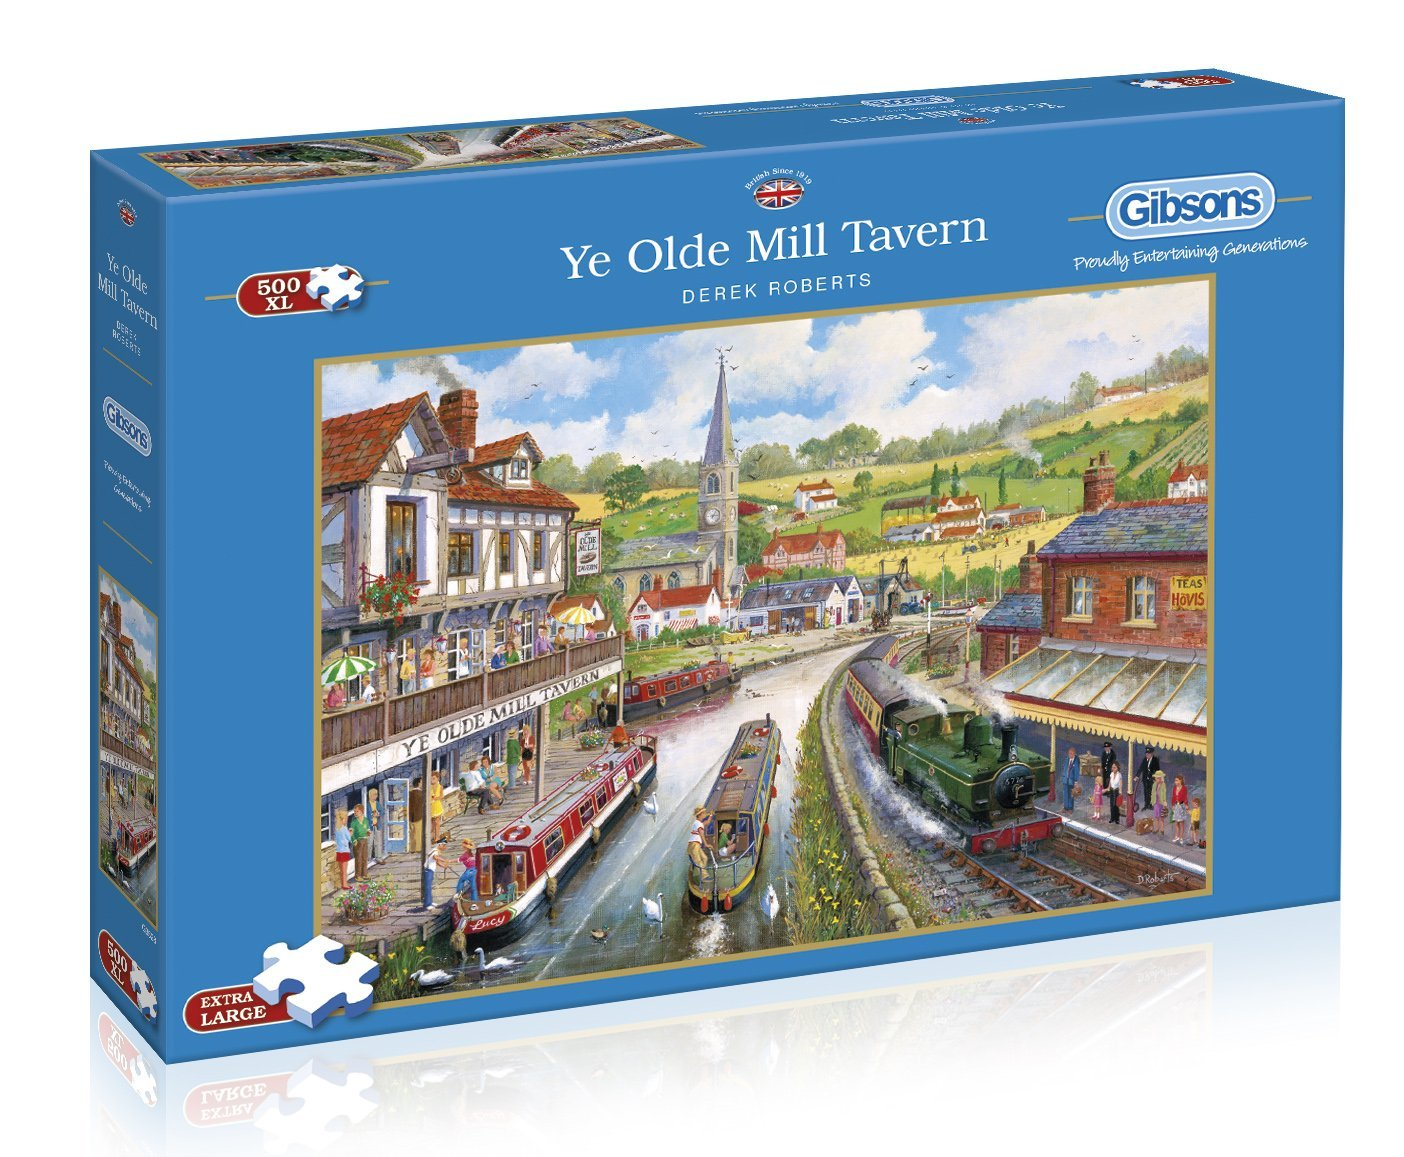 Ye Old Mill Tavern, 500 XL Puzzle